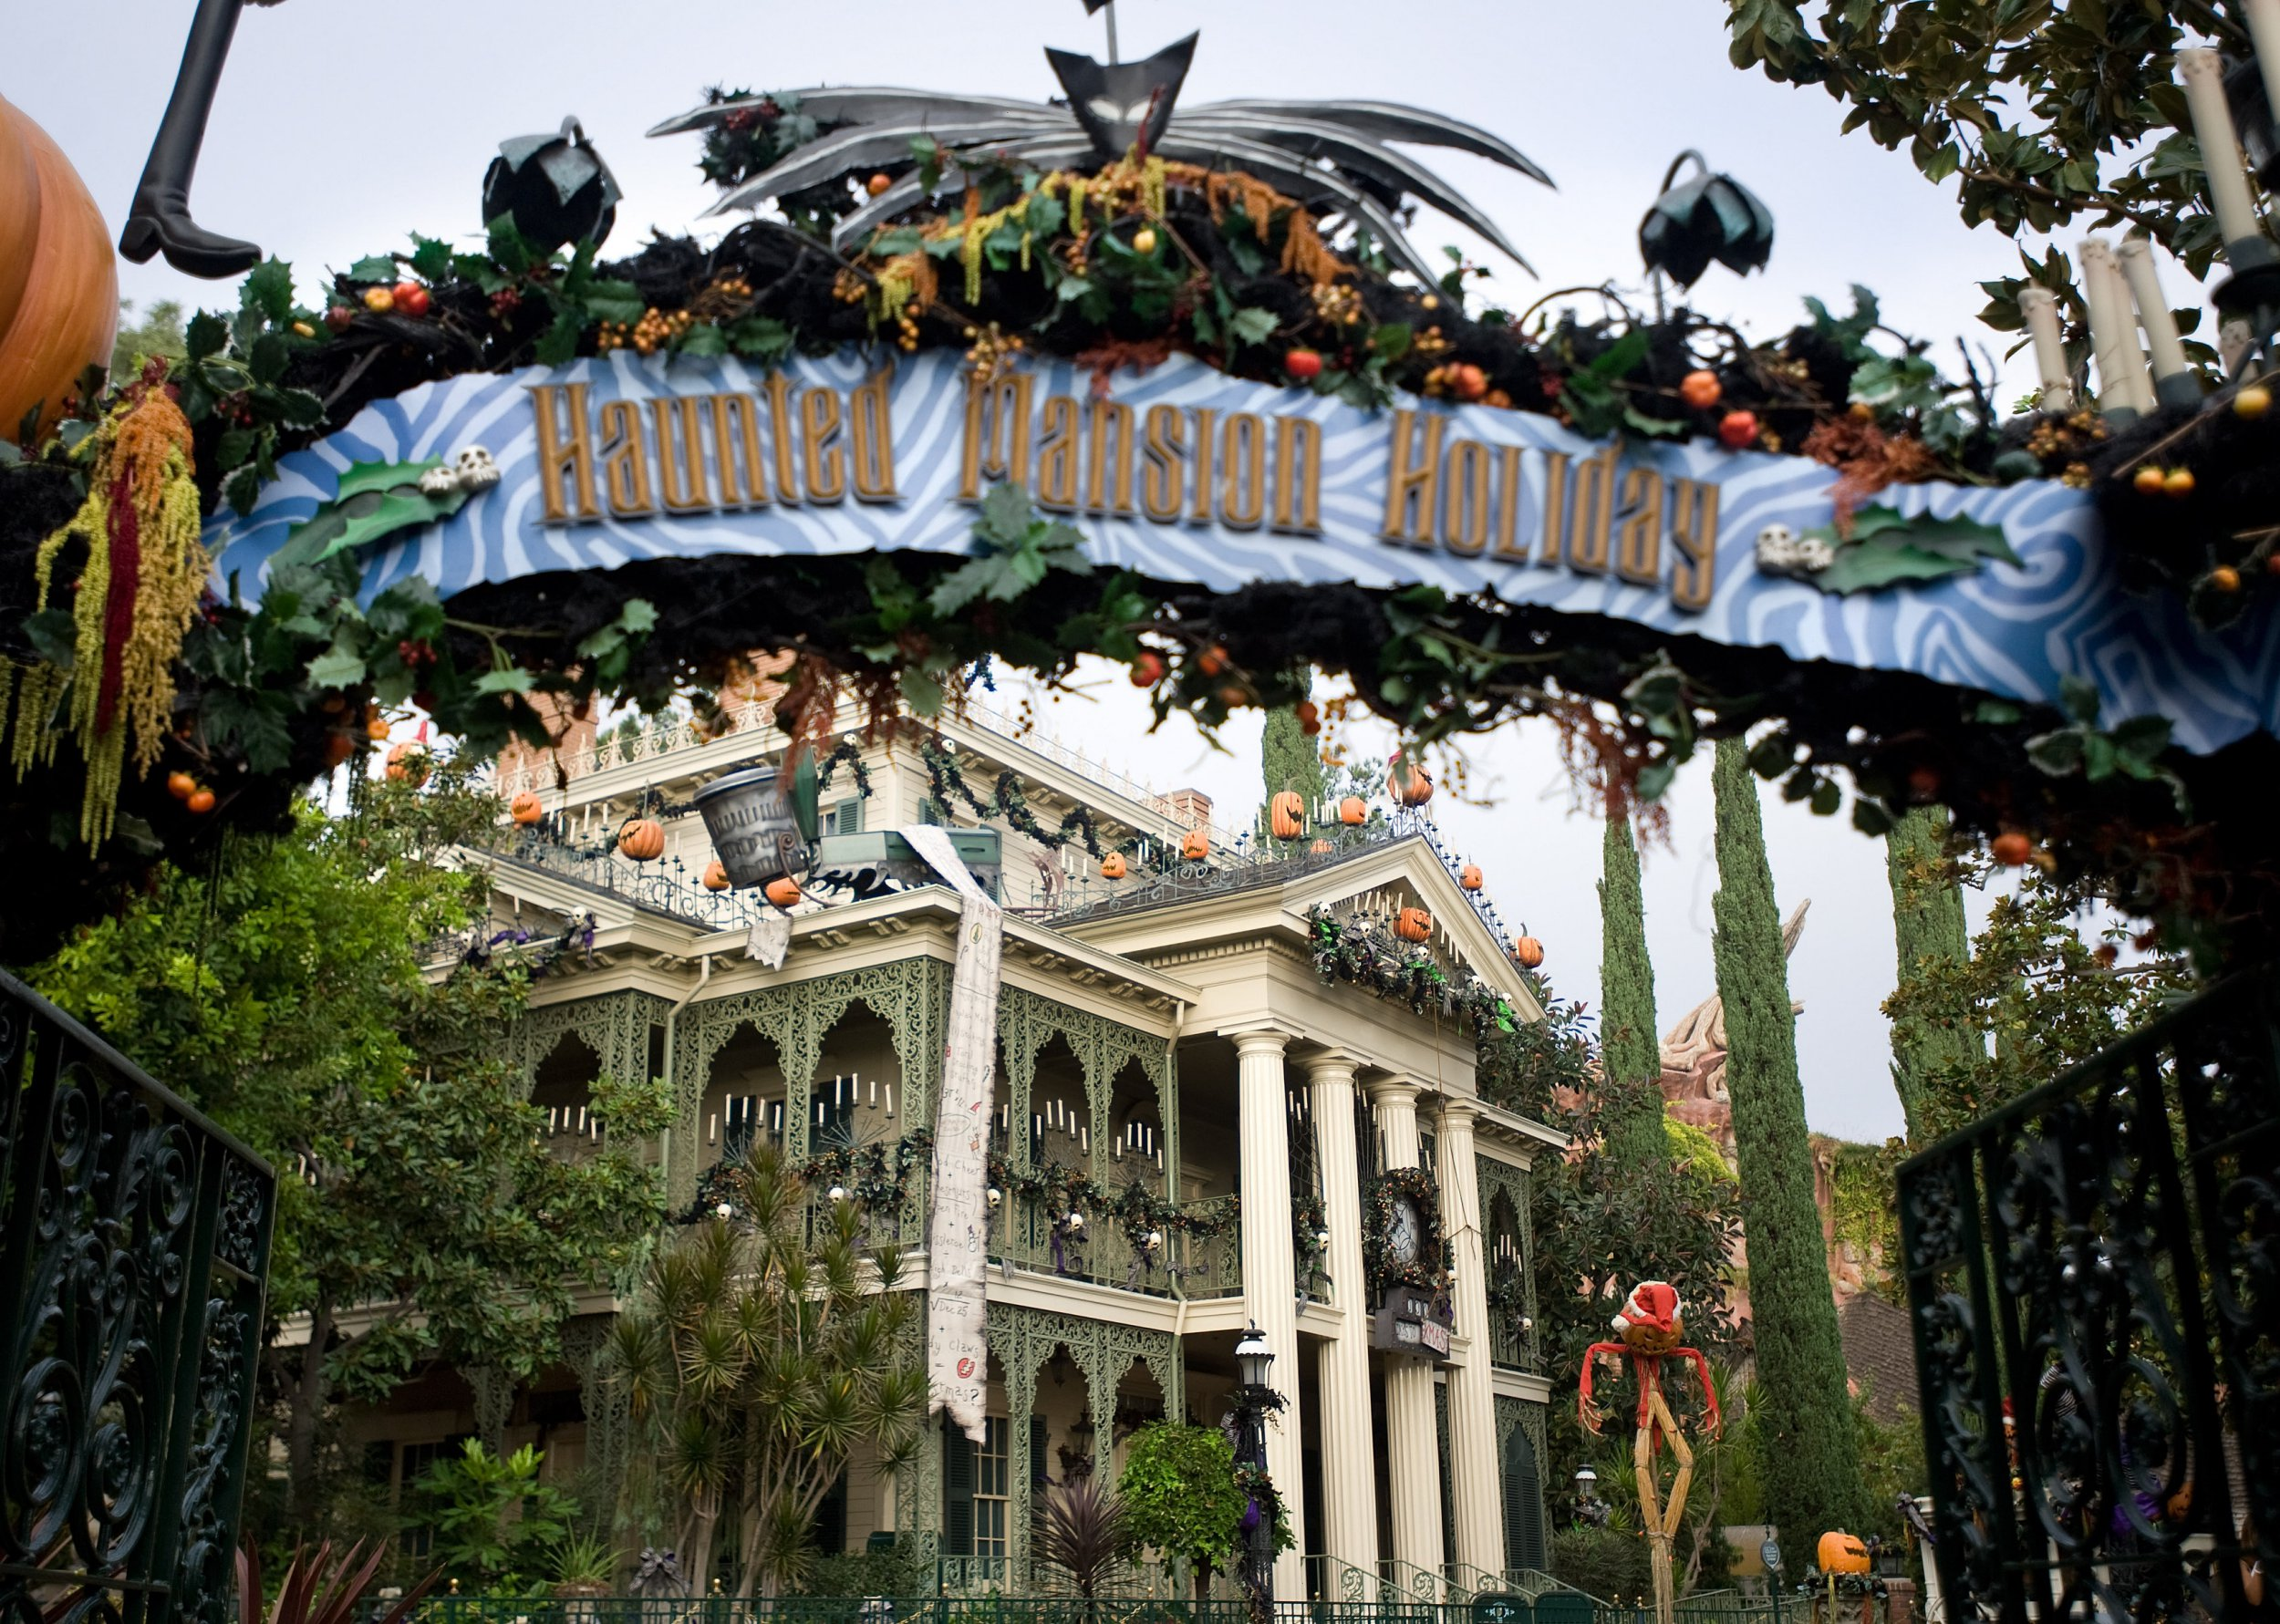 ANAHEIM, CA - OCTOBER 13: The Disney Haunted Mansion is creeped up for Halloween with dark plants and scary-faced pumpkins. ///ADDITIONAL INFORMATION: ??? MINDY SCHAUER, ORANGE COUNTY REGISTER ??? shot 101314 HG.HAUNTEDMANSION.1118 Brian Sandahl, a senior art director at Disney, is responsible for the yearly decorating of the Haunted Mansion, including the gingerbread house inside the attraction. (Photo by Mindy Schauer/Digital First Media/Orange County Register via Getty Images)